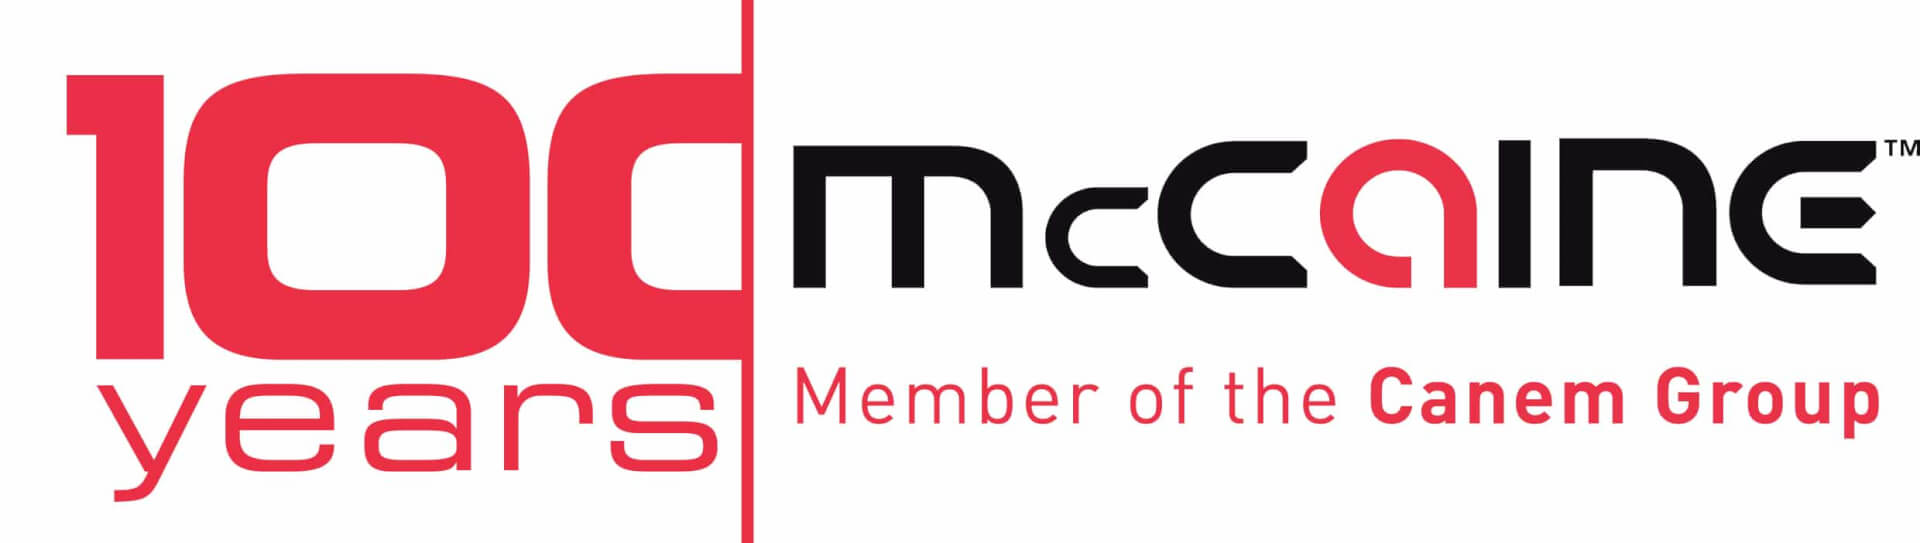 McCaine 100 year logo